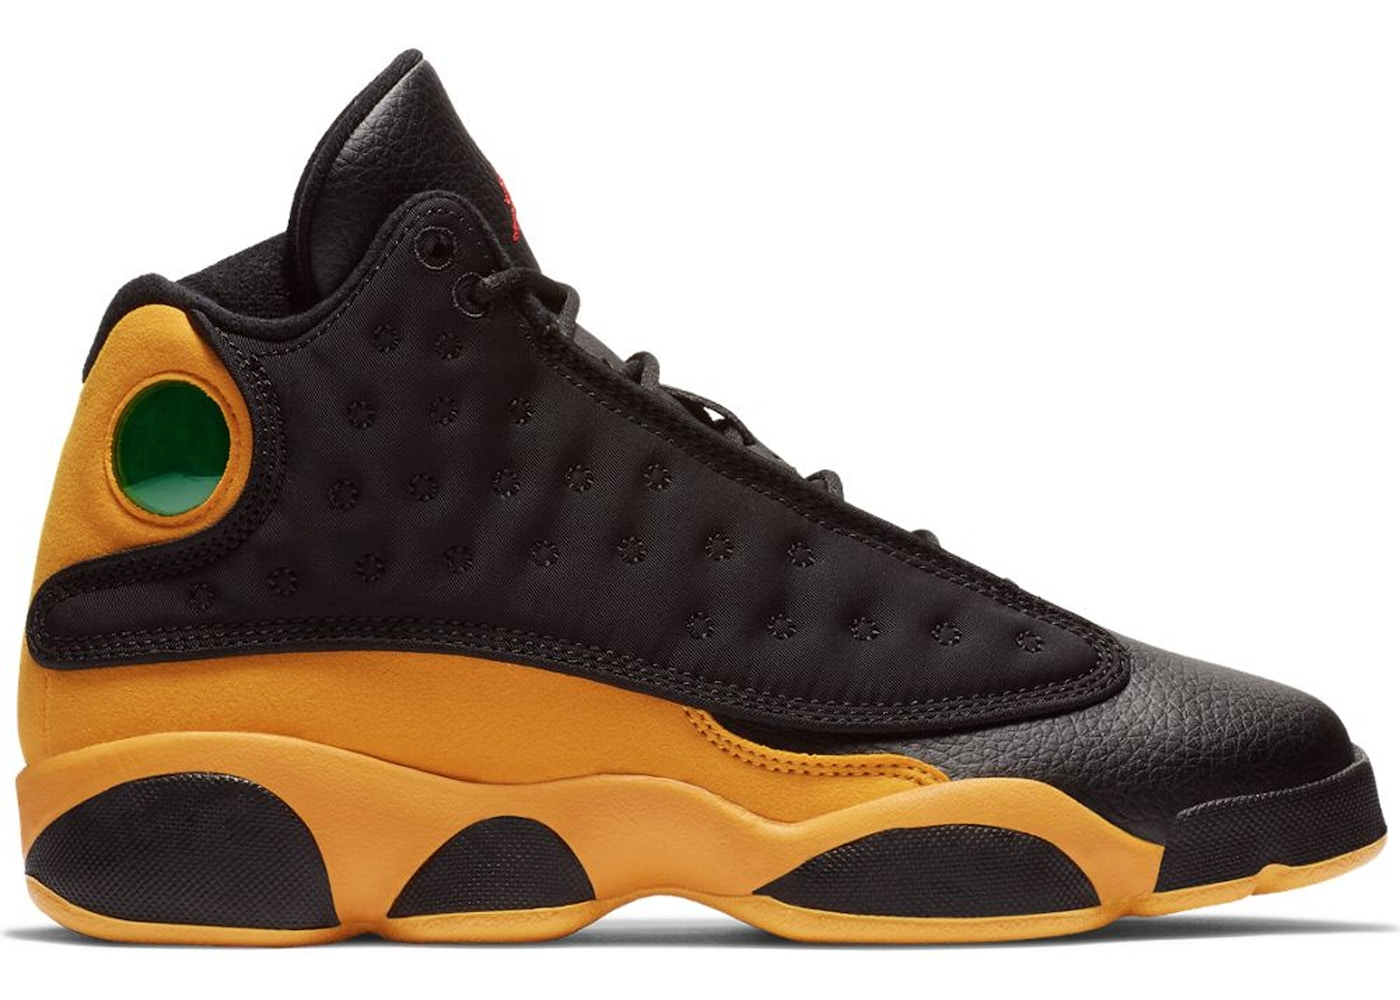 f858036f011 Sell. or Ask. Size: 5.5Y. View All Bids. Jordan 13 Retro Carmelo Anthony  Class Of 2002 ...